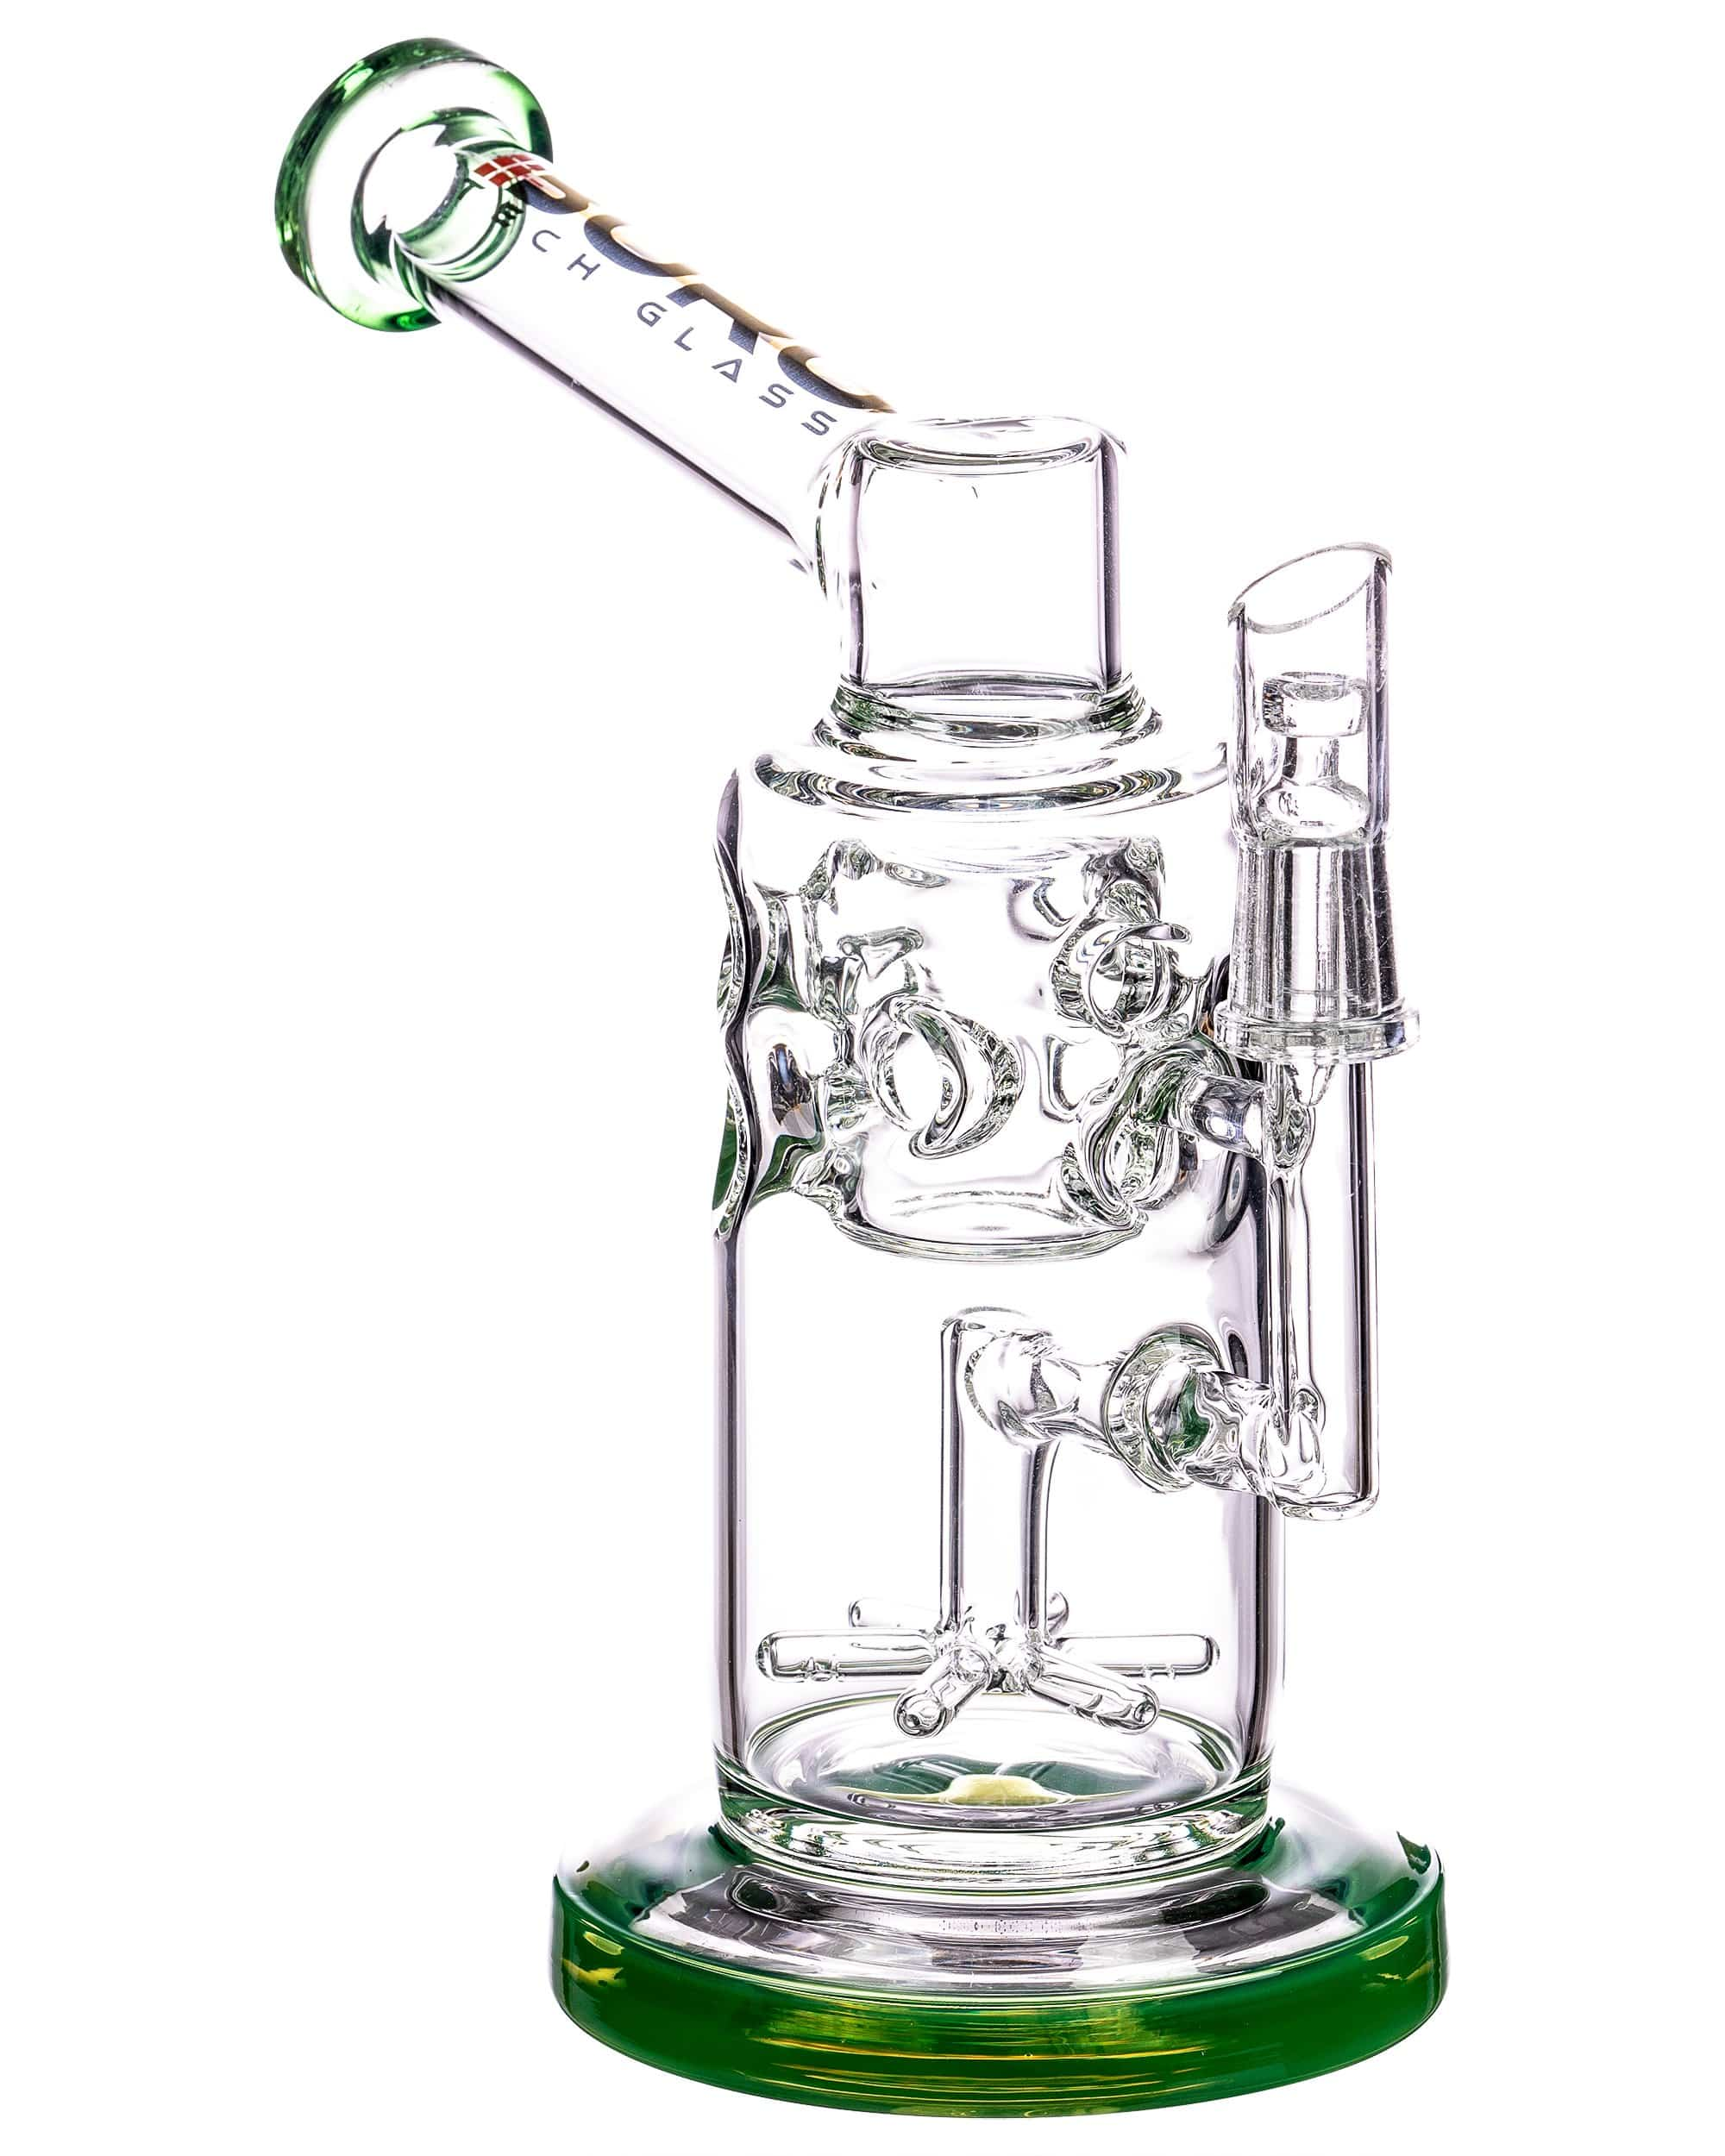 Boro Tech Swiss Incycler Rig